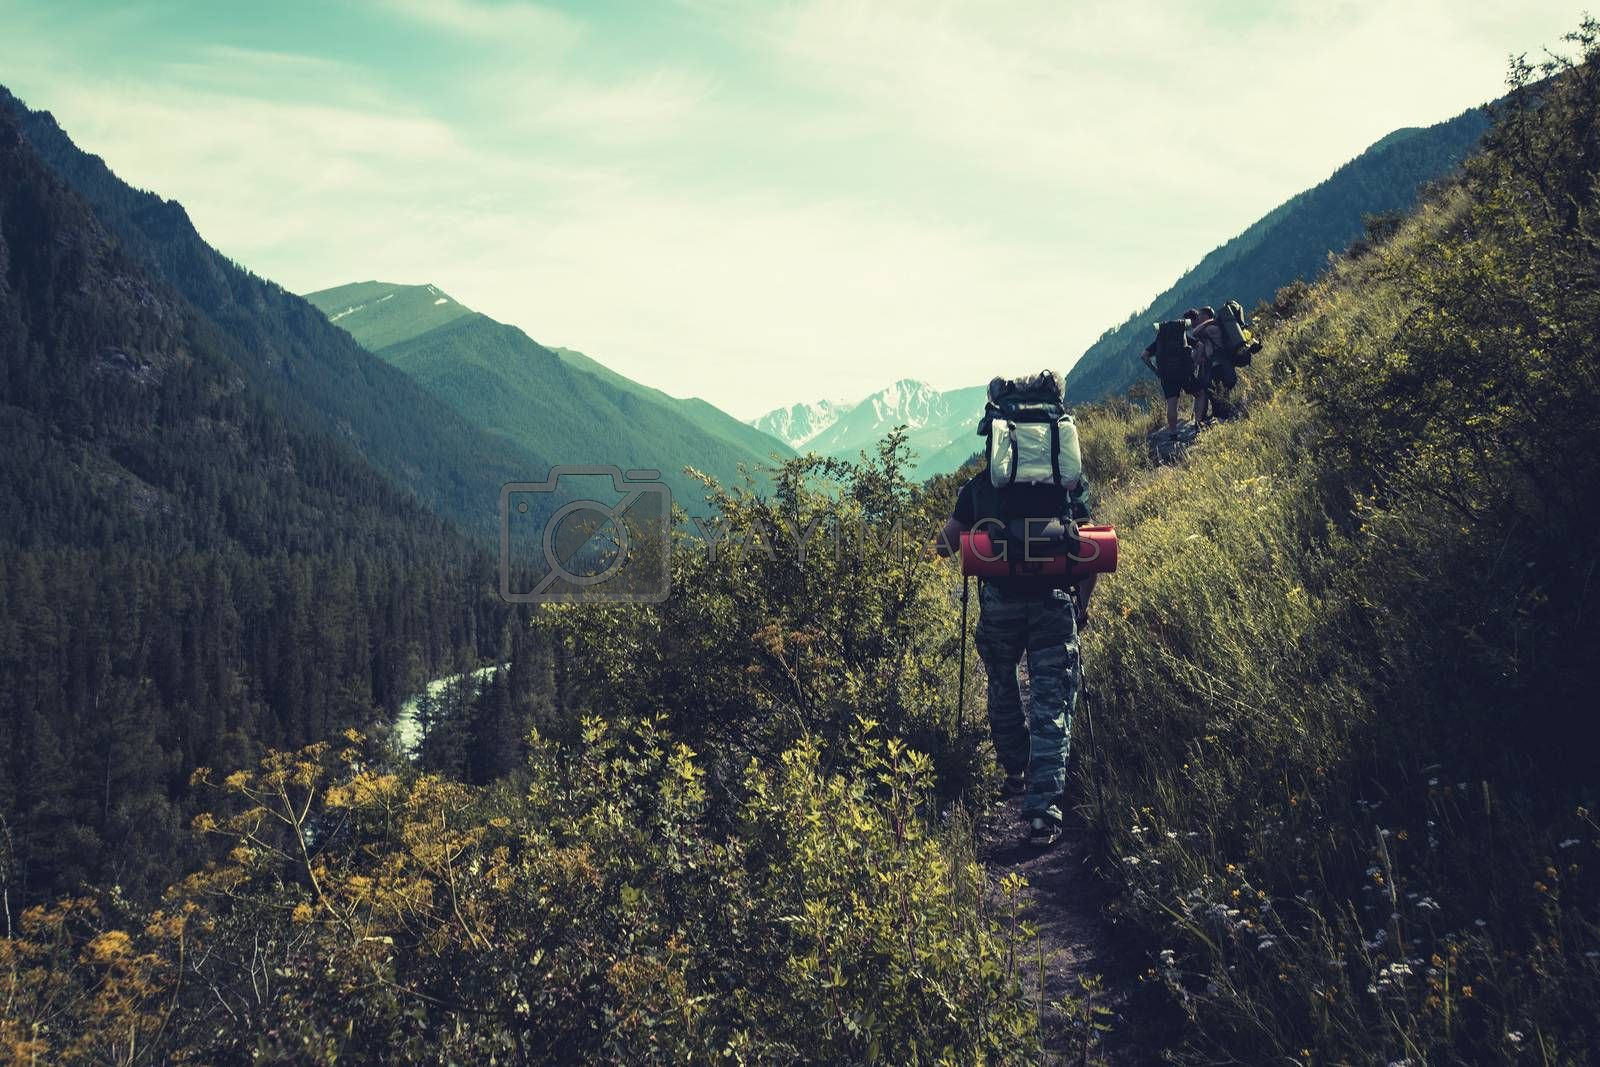 Royalty free image of Man with backpack hiking in mountains Travel Lifestyle success concept adventure active vacations outdoor mountaineering sport landscape by diy13